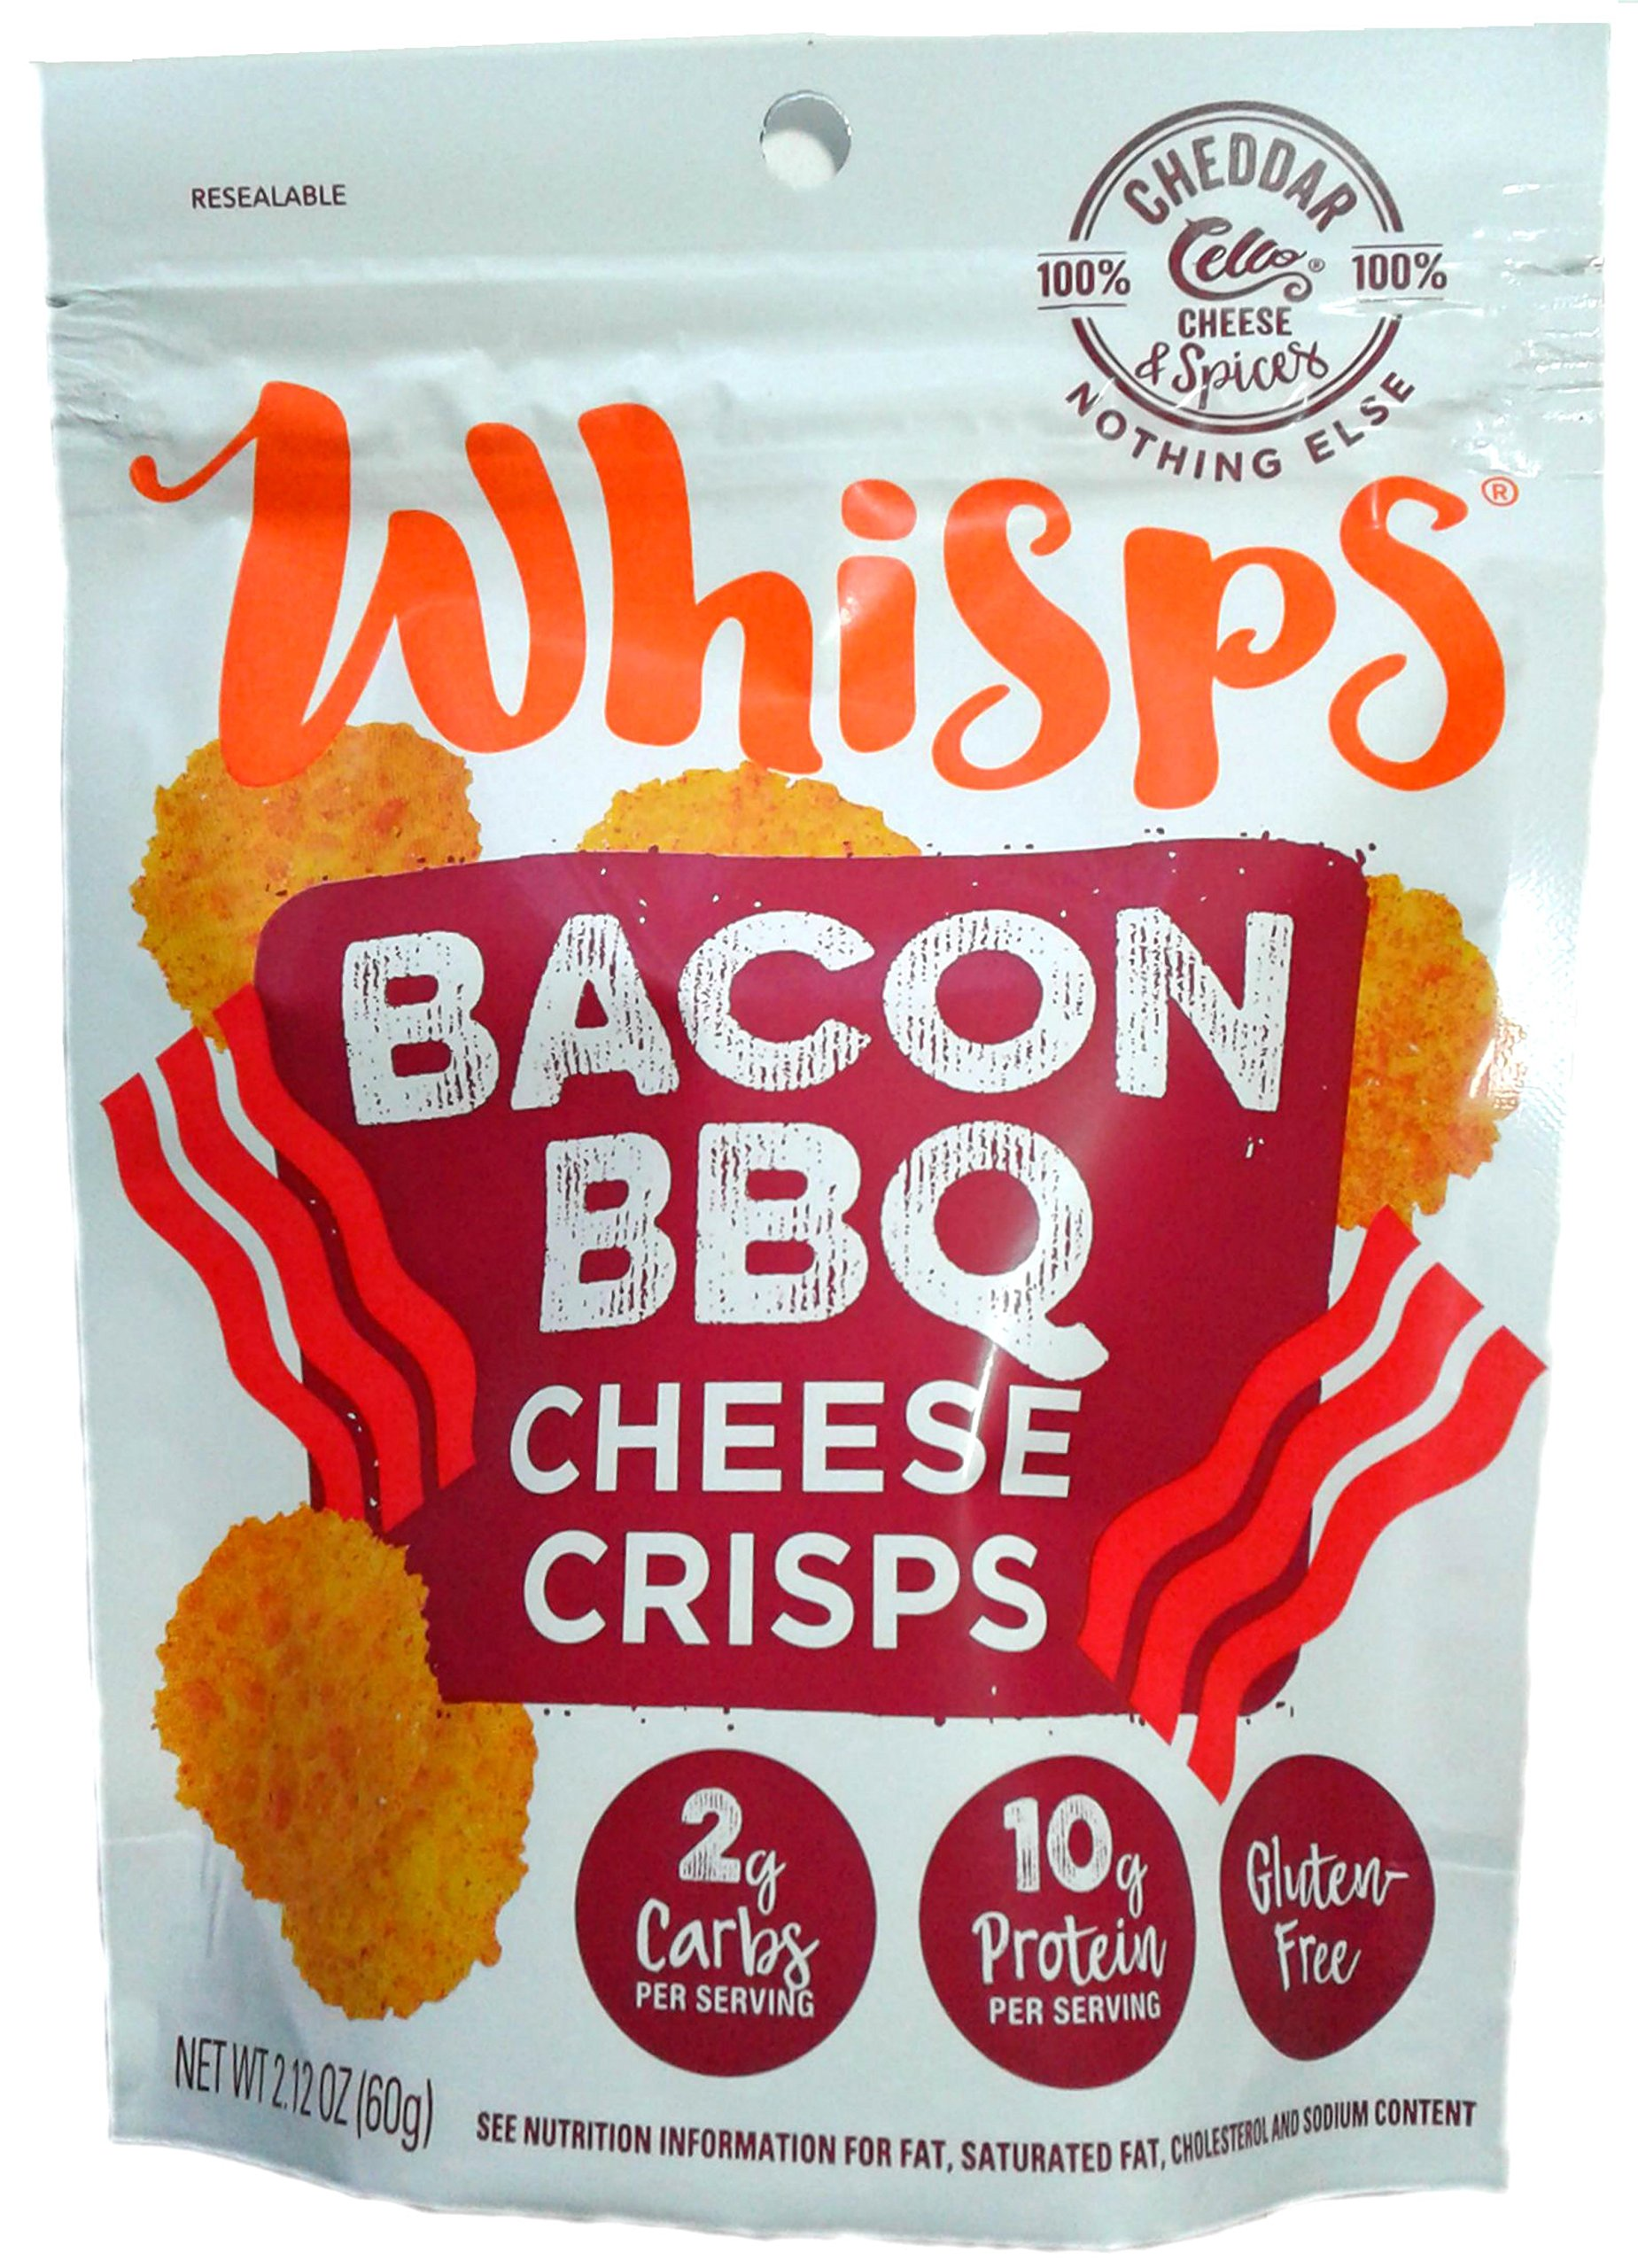 Whisps Bacon BBQ Cheddar Cheese Crisps; 100% Cheese, Low Carb, Gluten Free, High Protein (12 Pack)